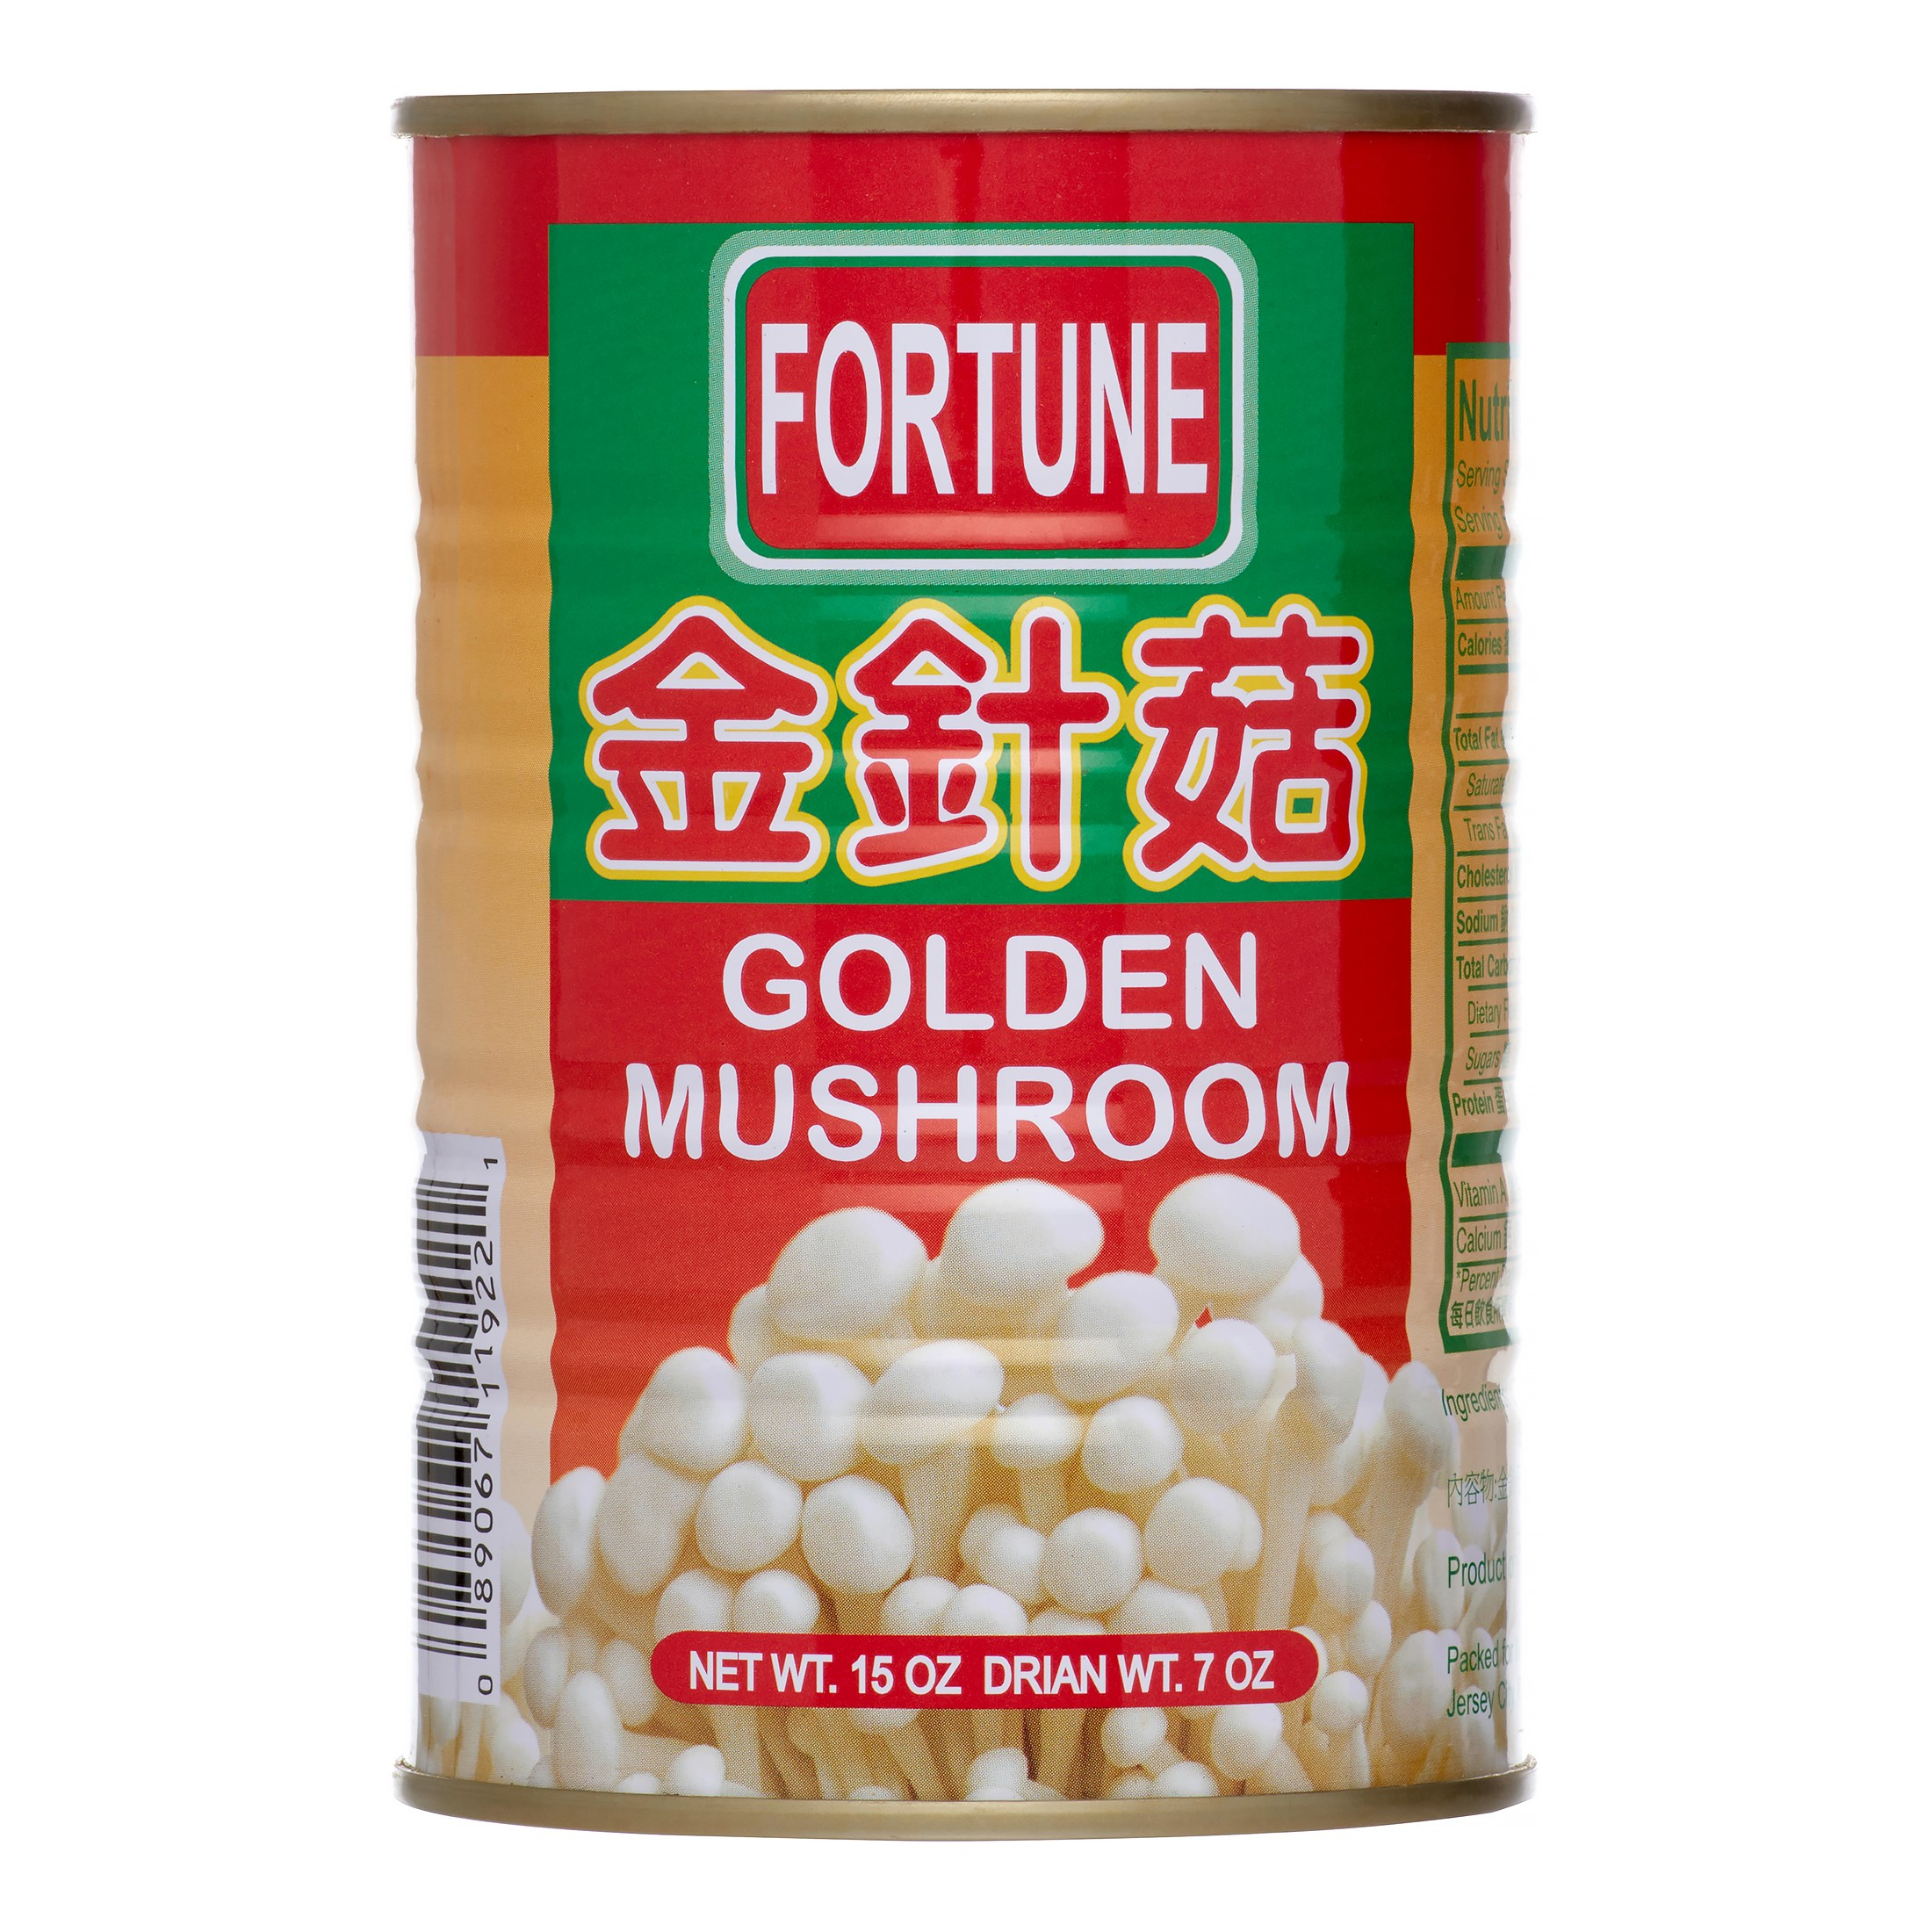 Fortune Golden Mushroom, 15 Oz by Fortune